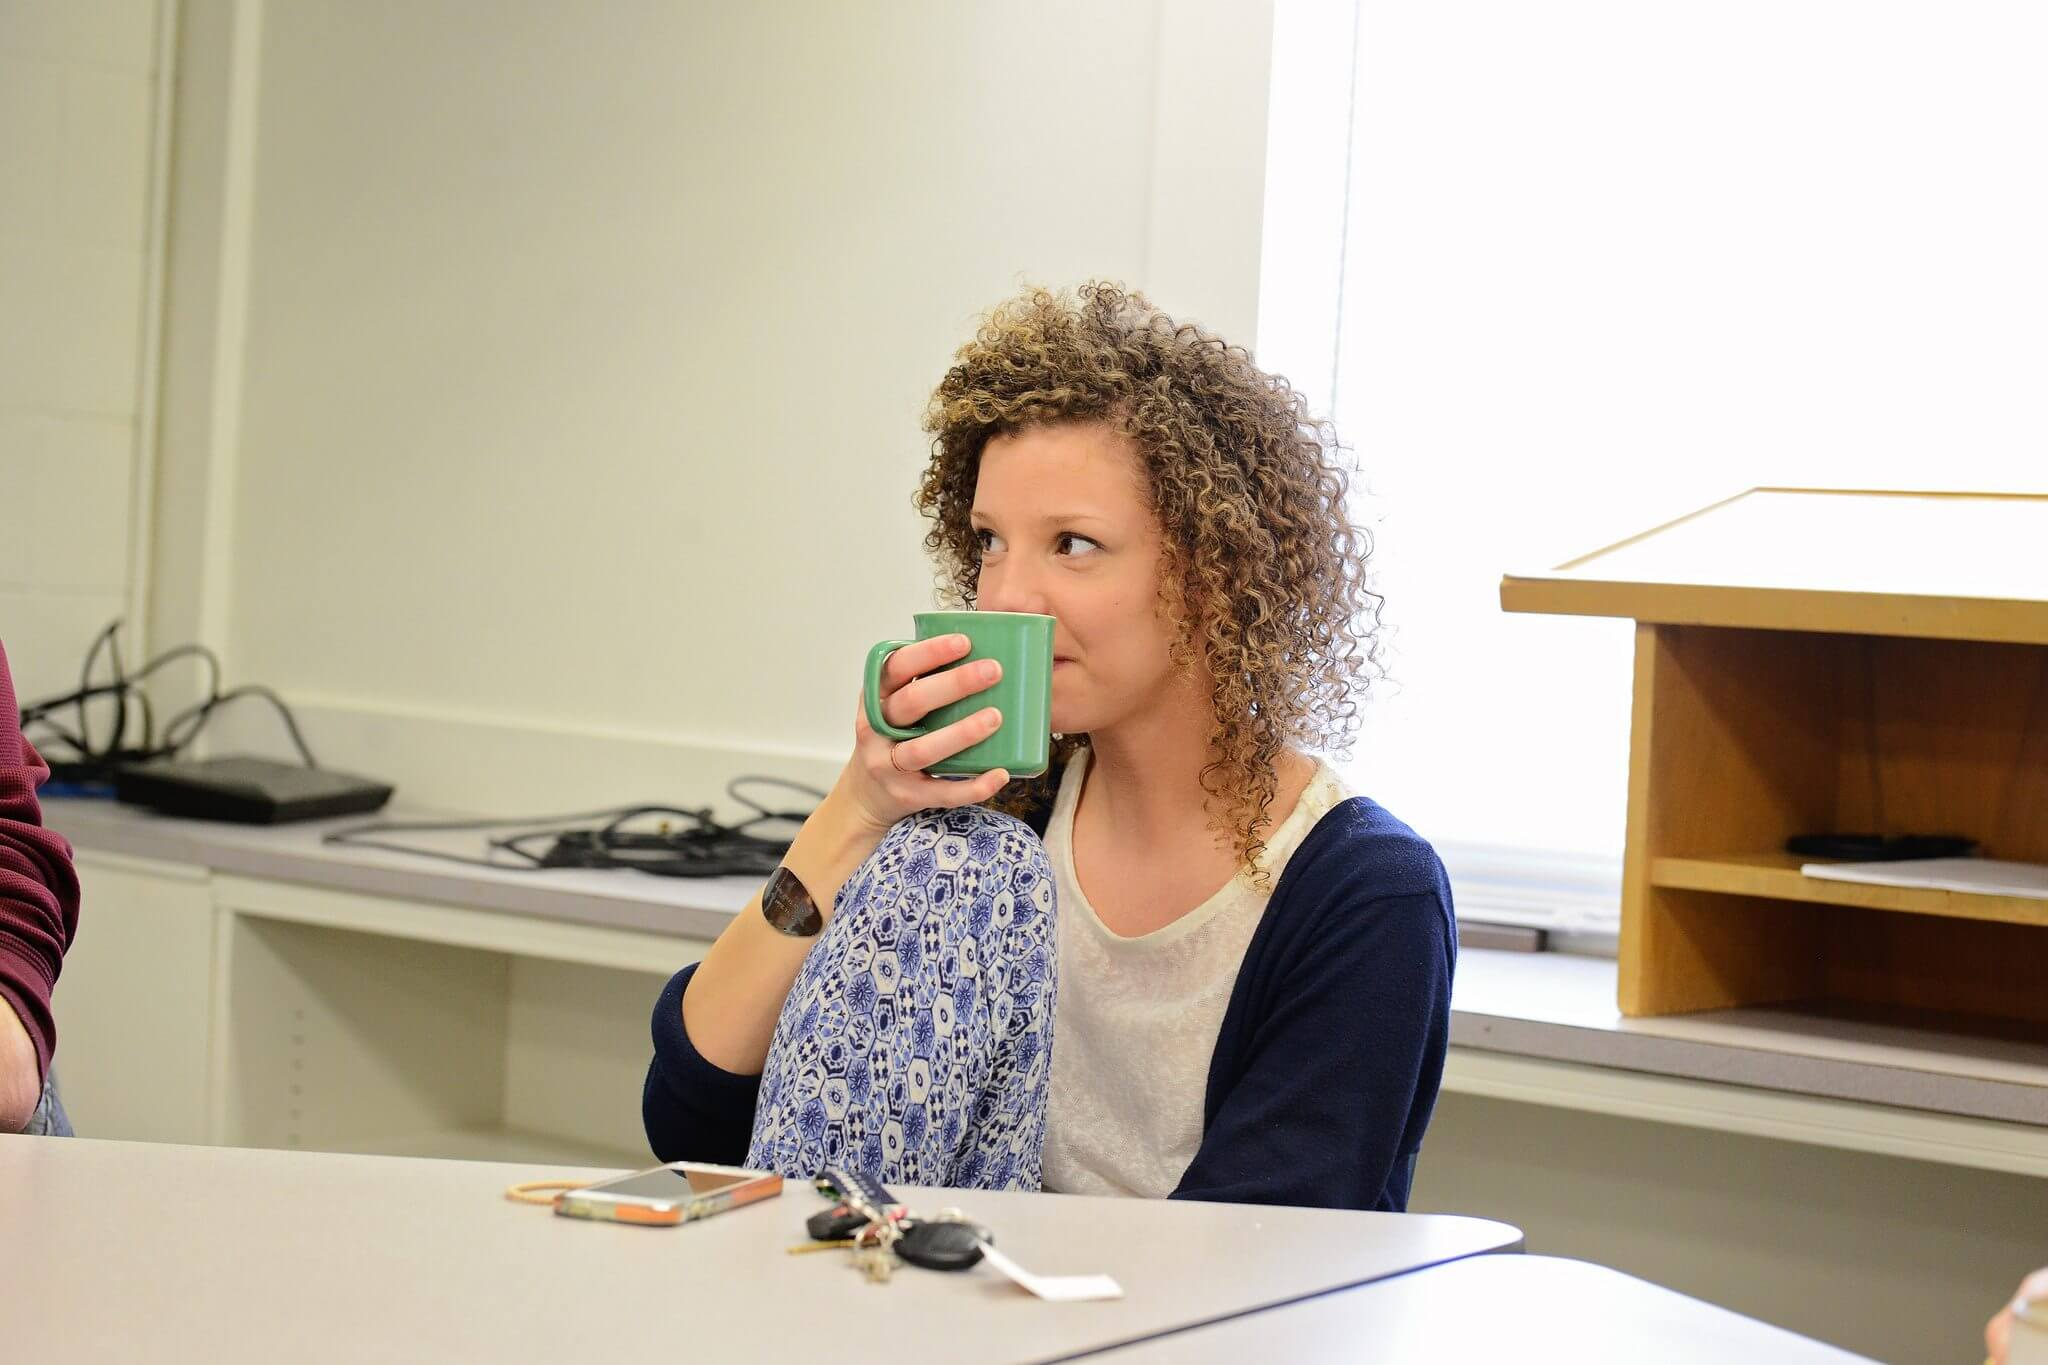 Girl drinking coffee at desk